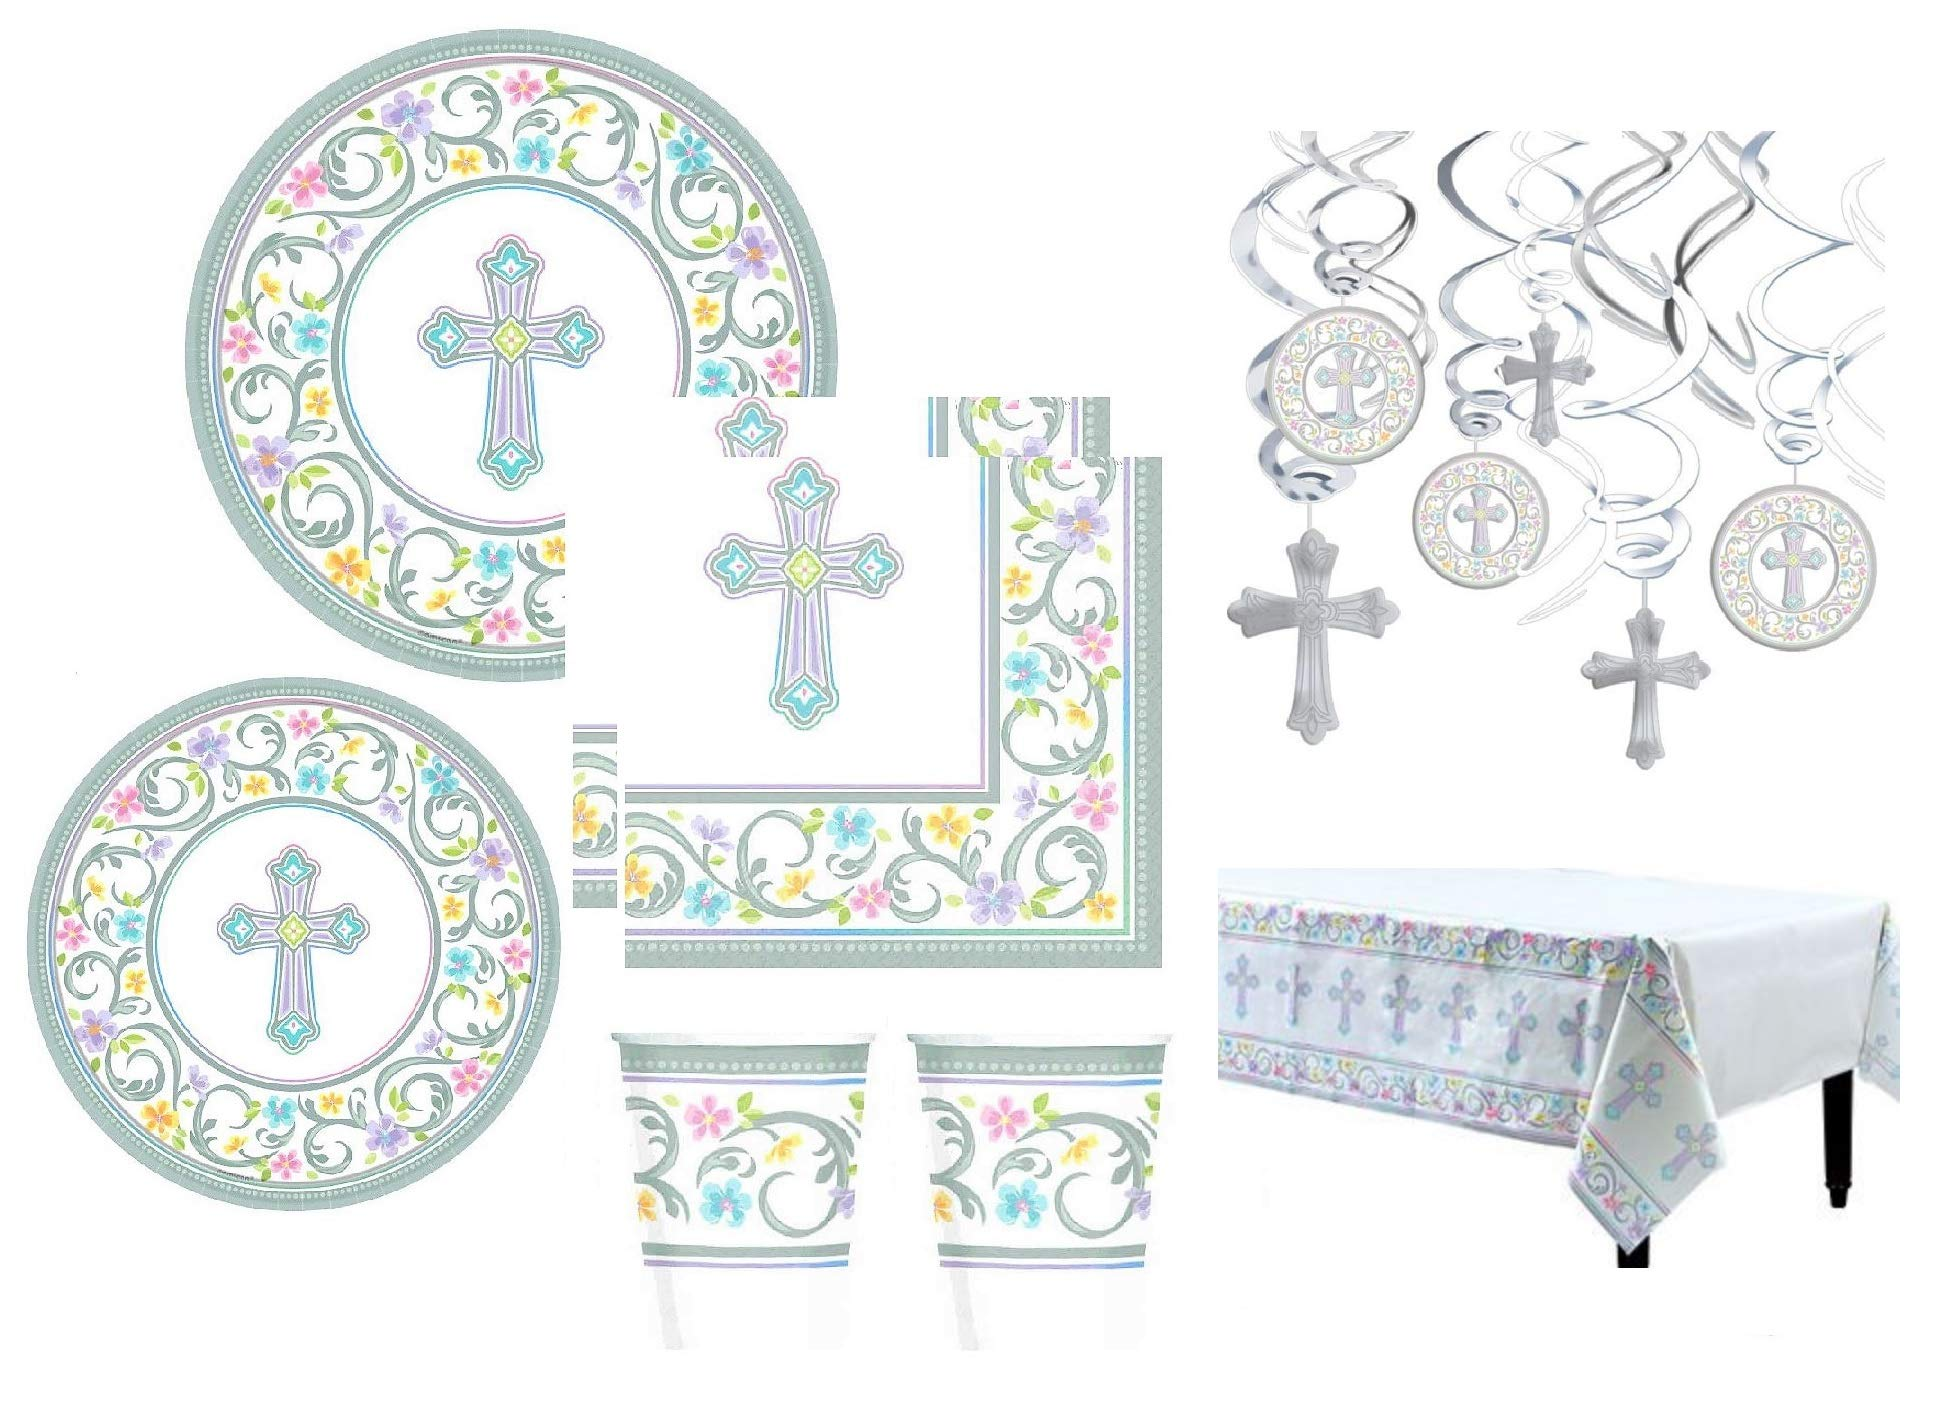 Inspirational Religious Party Supplies And Decorations For Baptism Confirmation Holy Communion Dedication Themed Plates Napkins Cups Hanging Swirls Table Cover